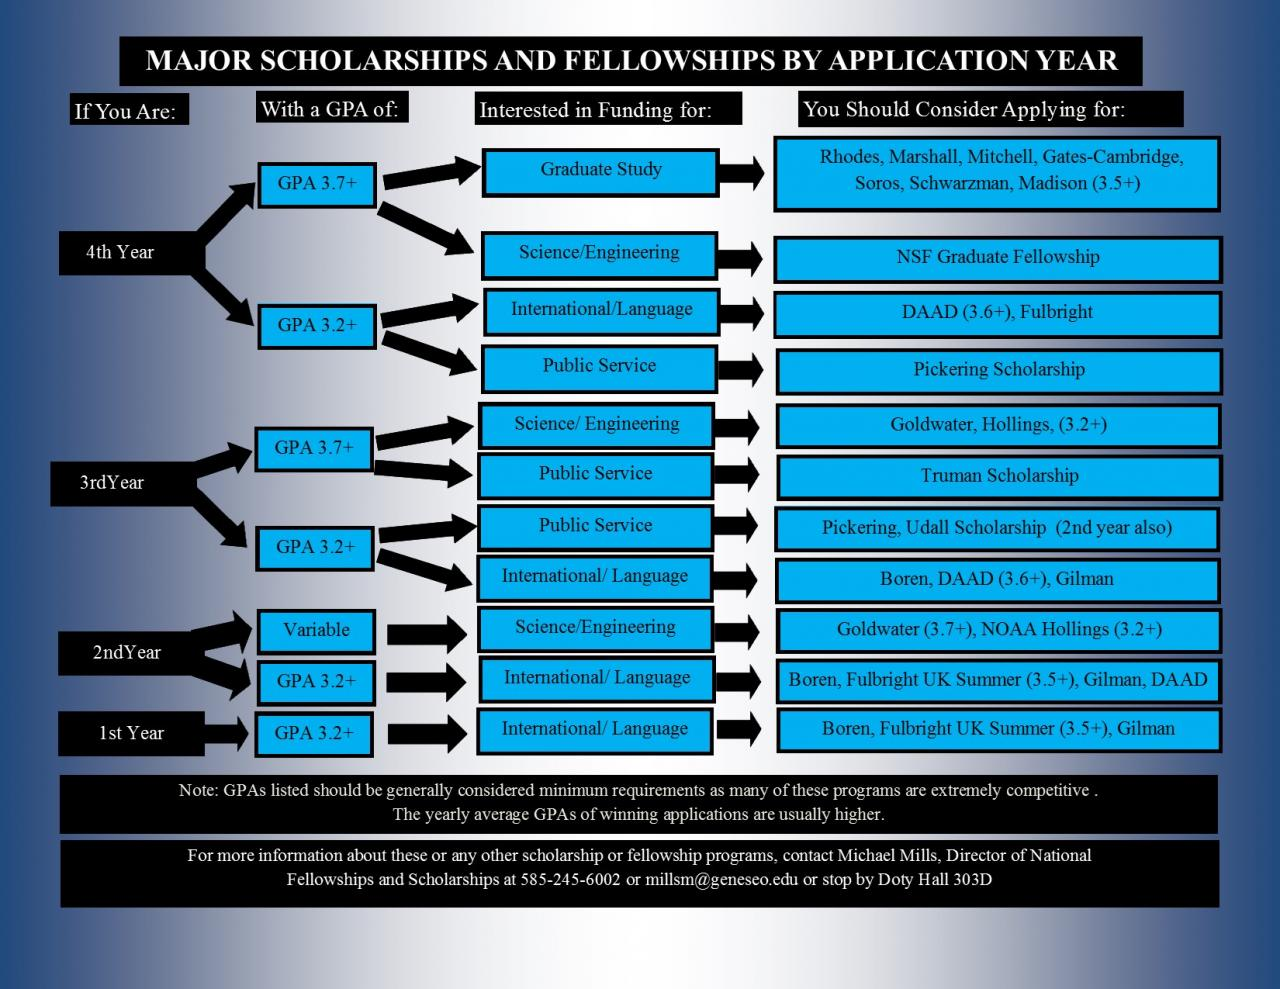 scholarship and fellowship by application year